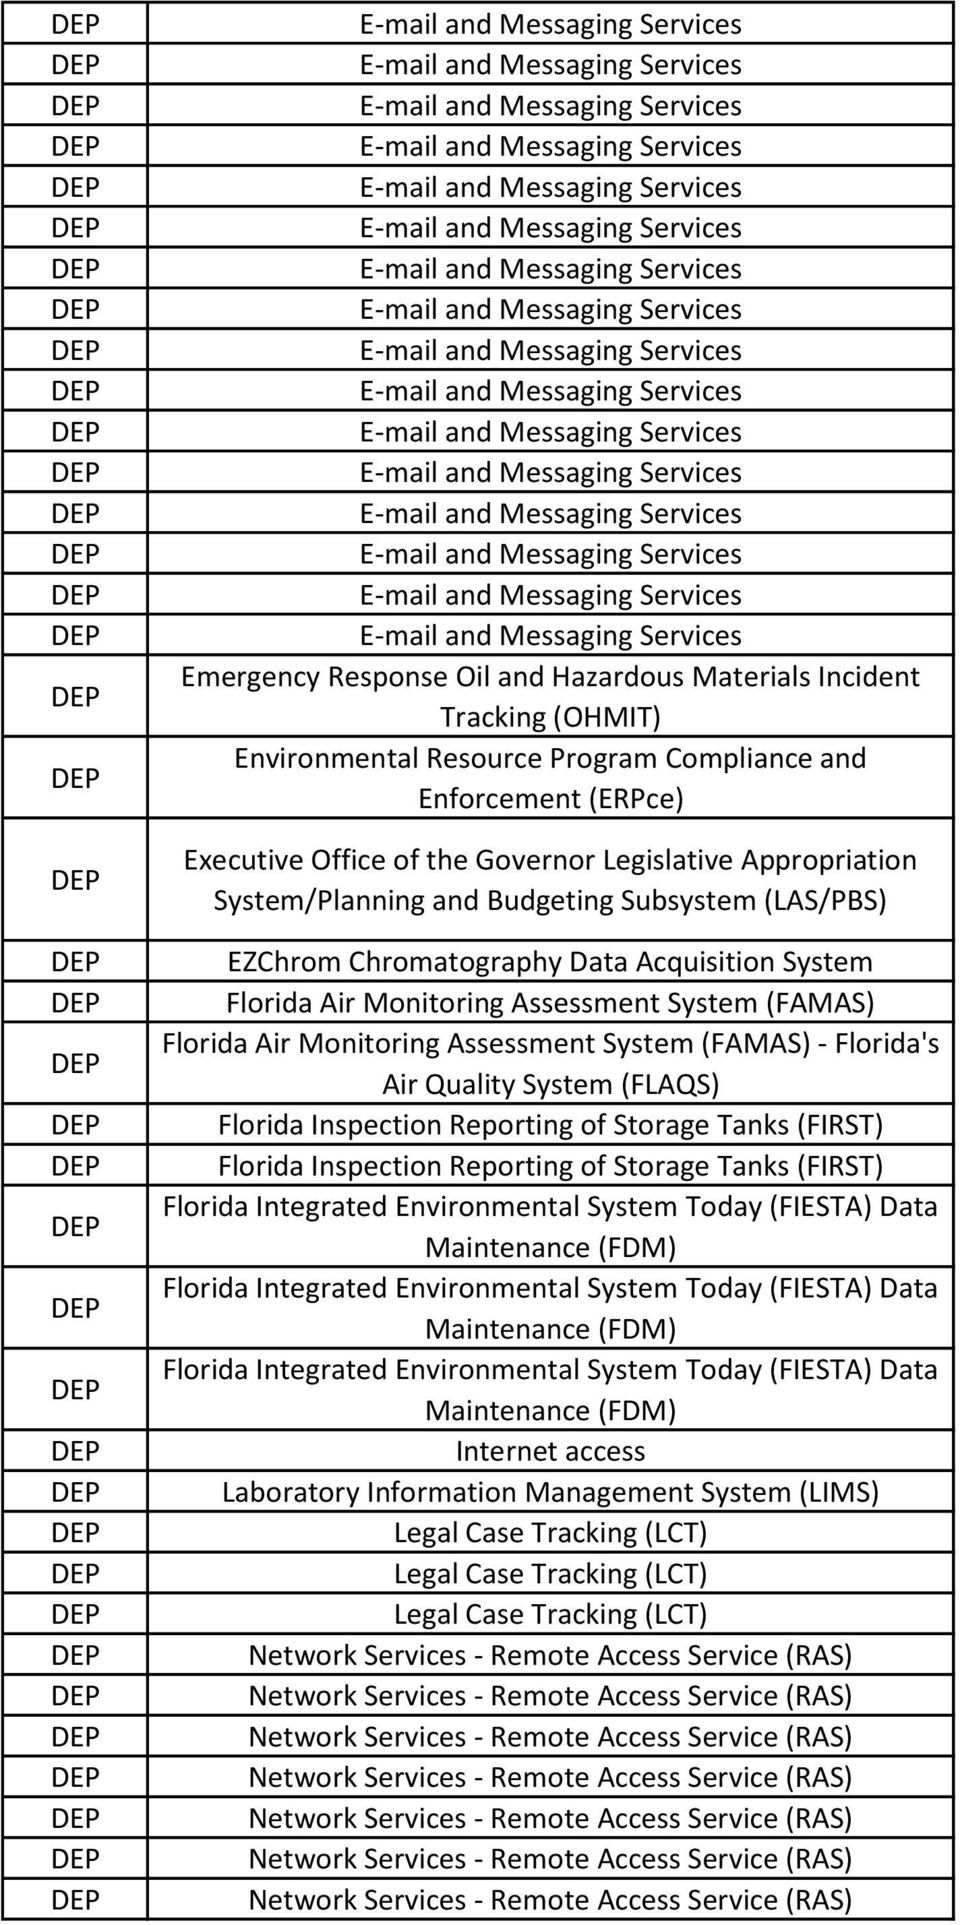 Florida's Air Quality System (FLAQS) Florida Inspection Reporting of Storage Tanks (FIRST) Florida Inspection Reporting of Storage Tanks (FIRST) Florida Integrated Environmental System Today (FIESTA)